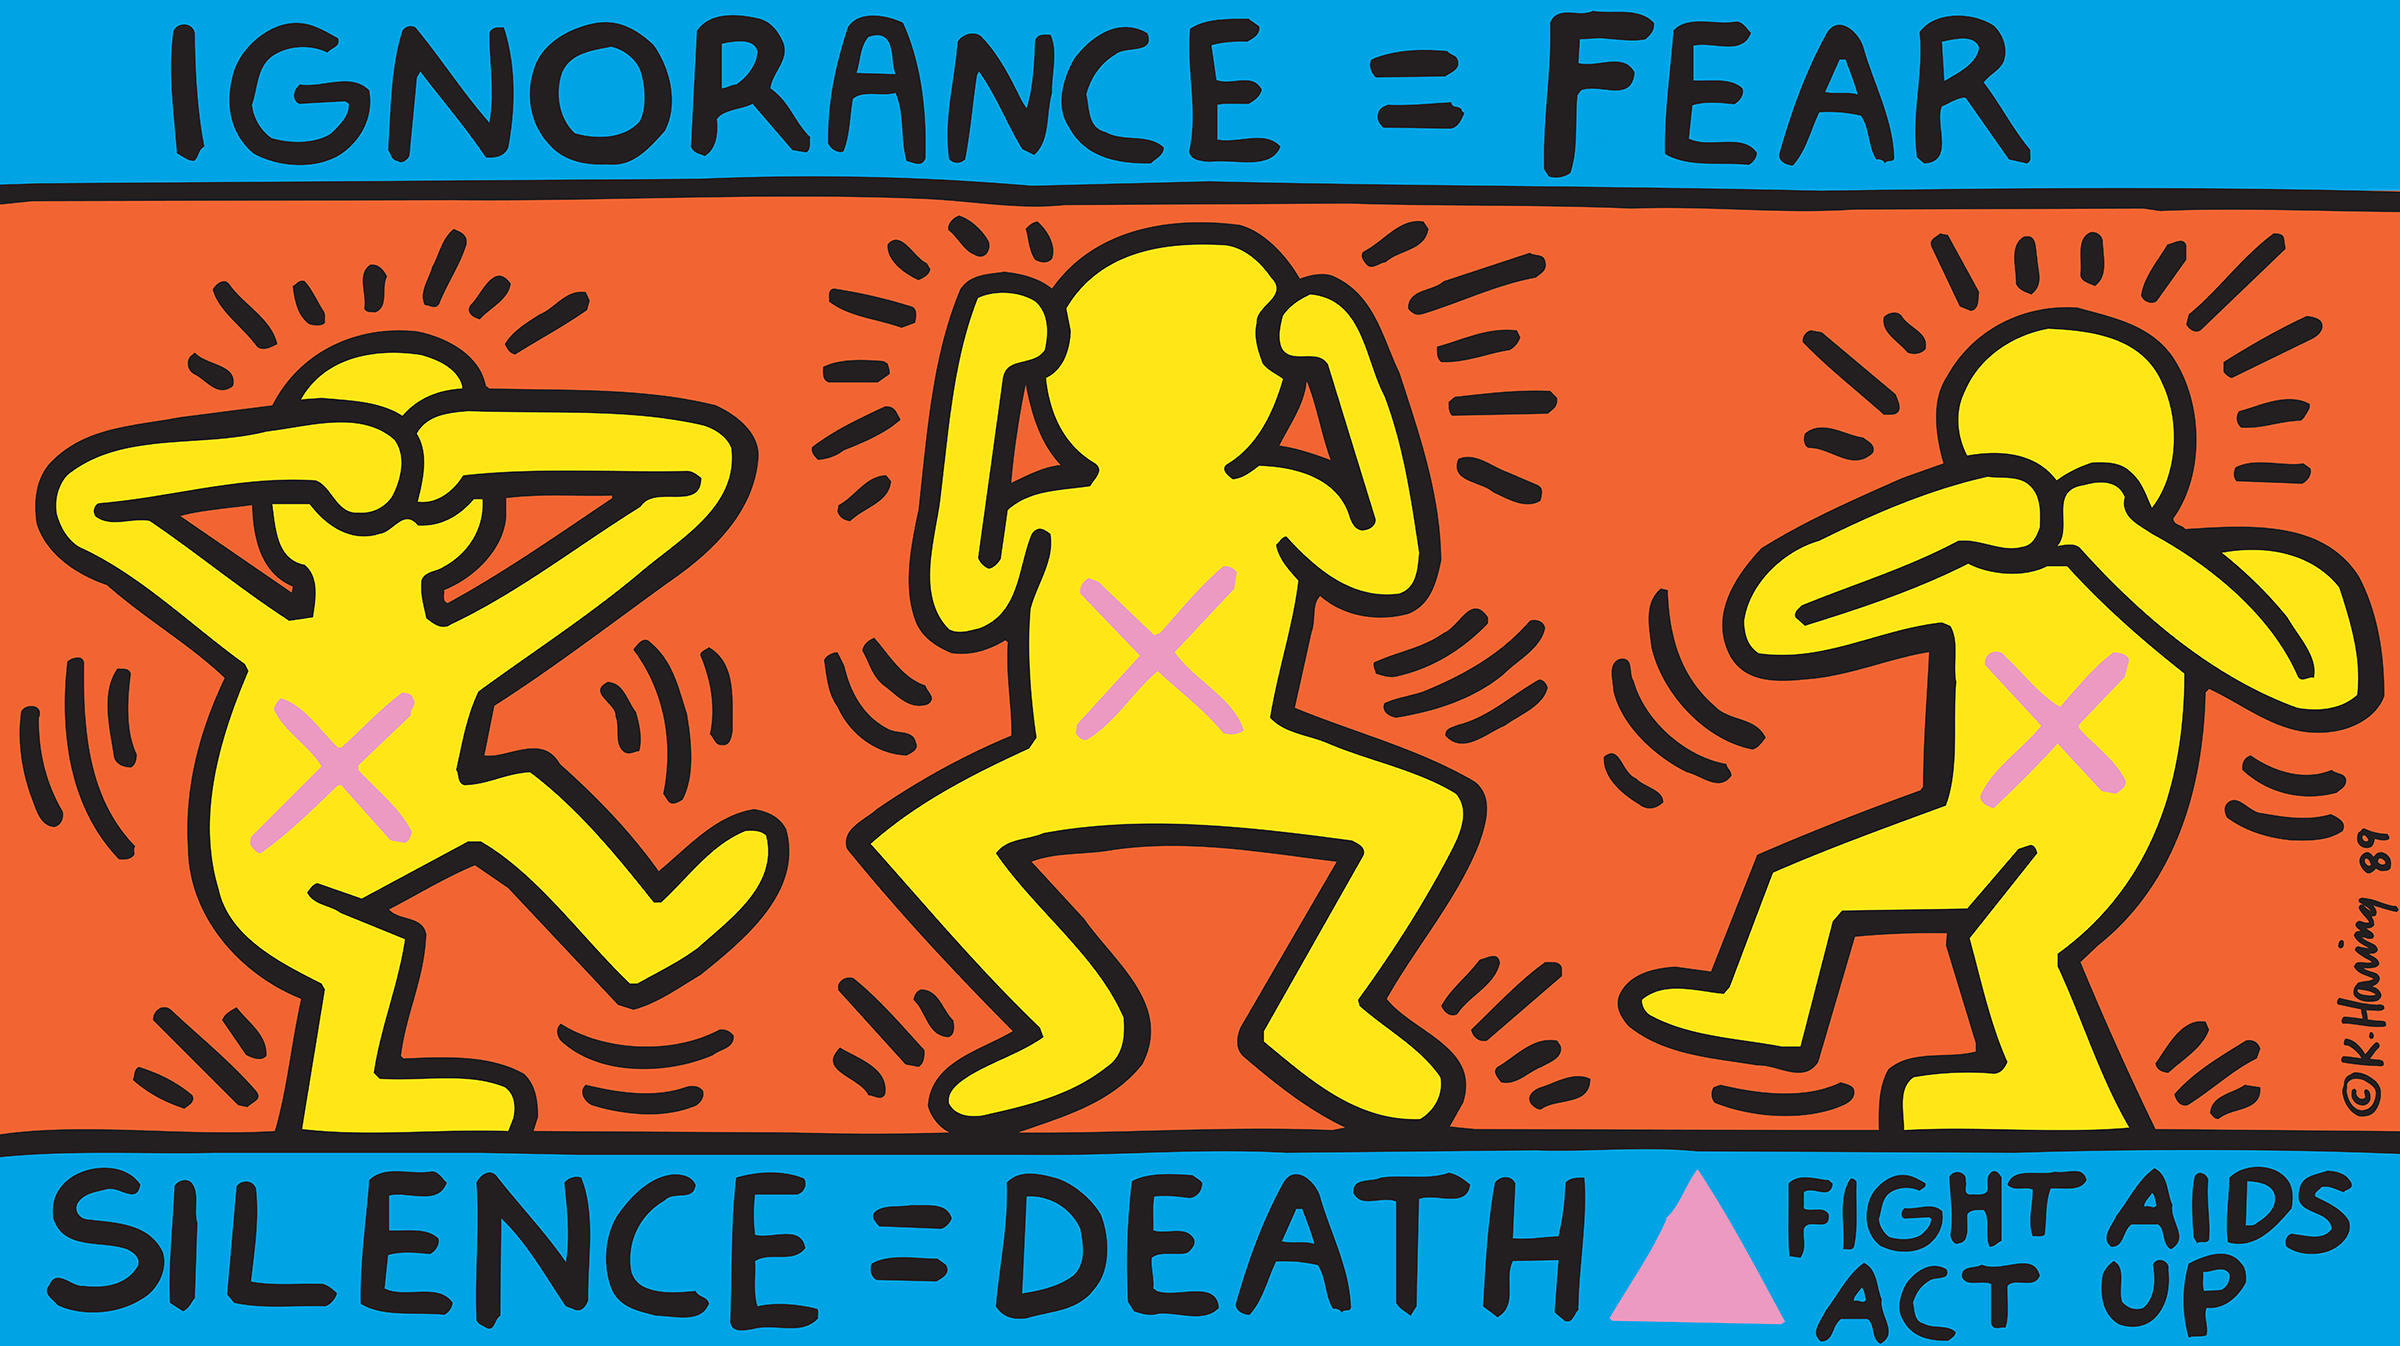 Ignorance = Fear, Silence = Death, Act Up poster, 1989